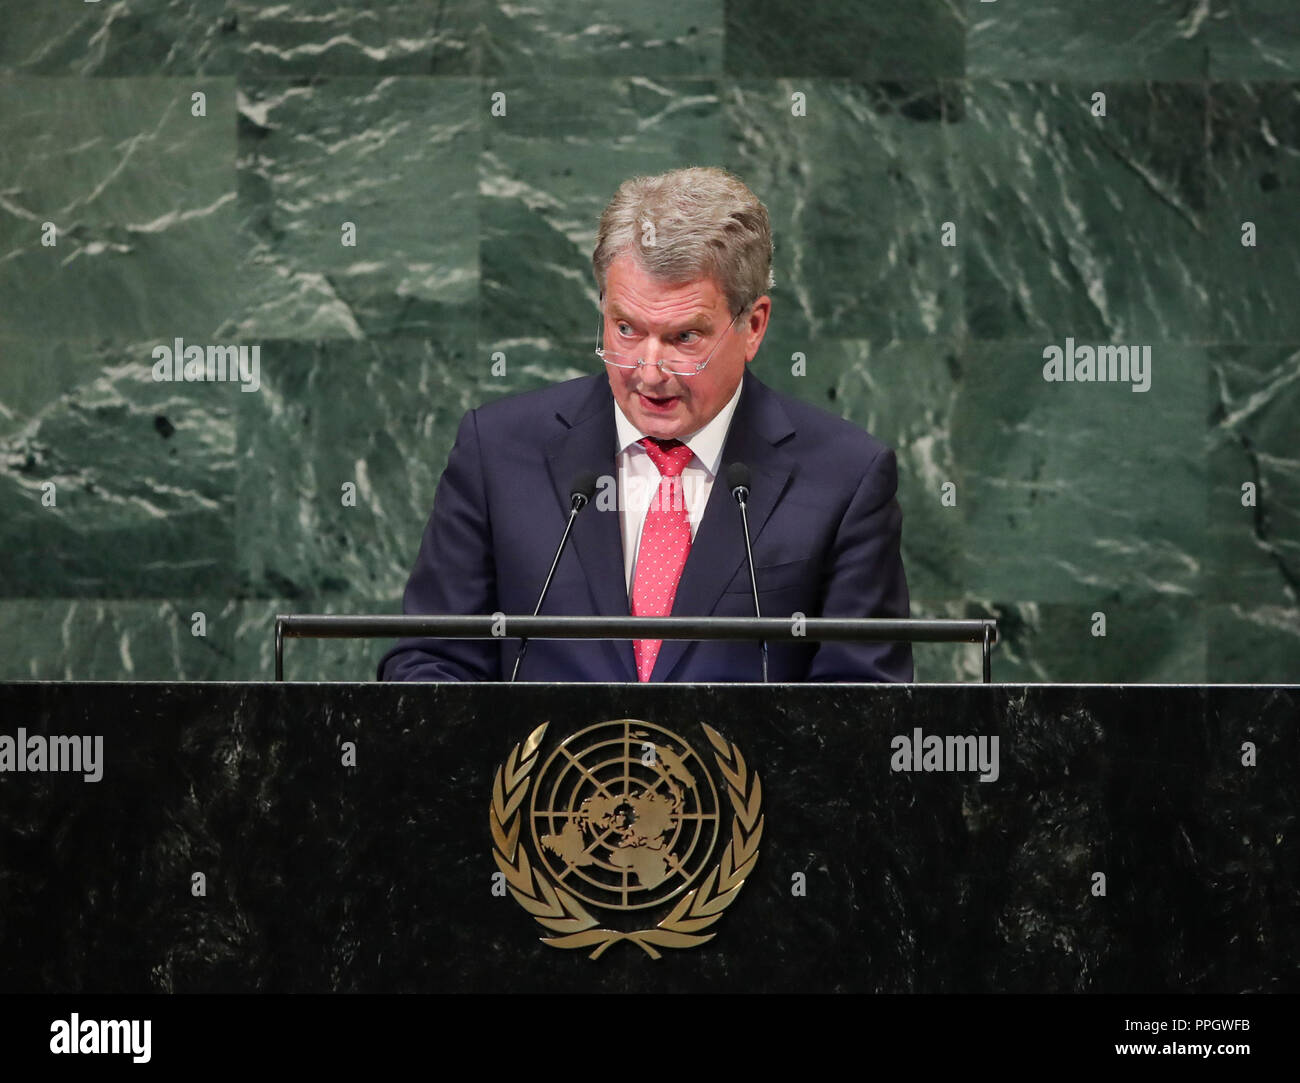 United Nations, New York, USA. 25th Sep, 2018. Finnish President Sauli Niinisto addresses the General Debate of the 73rd session of the United Nations General Assembly at the UN headquarters in New York, on Sept. 25, 2018. Credit: Wang Ying/Xinhua/Alamy Live News - Stock Image